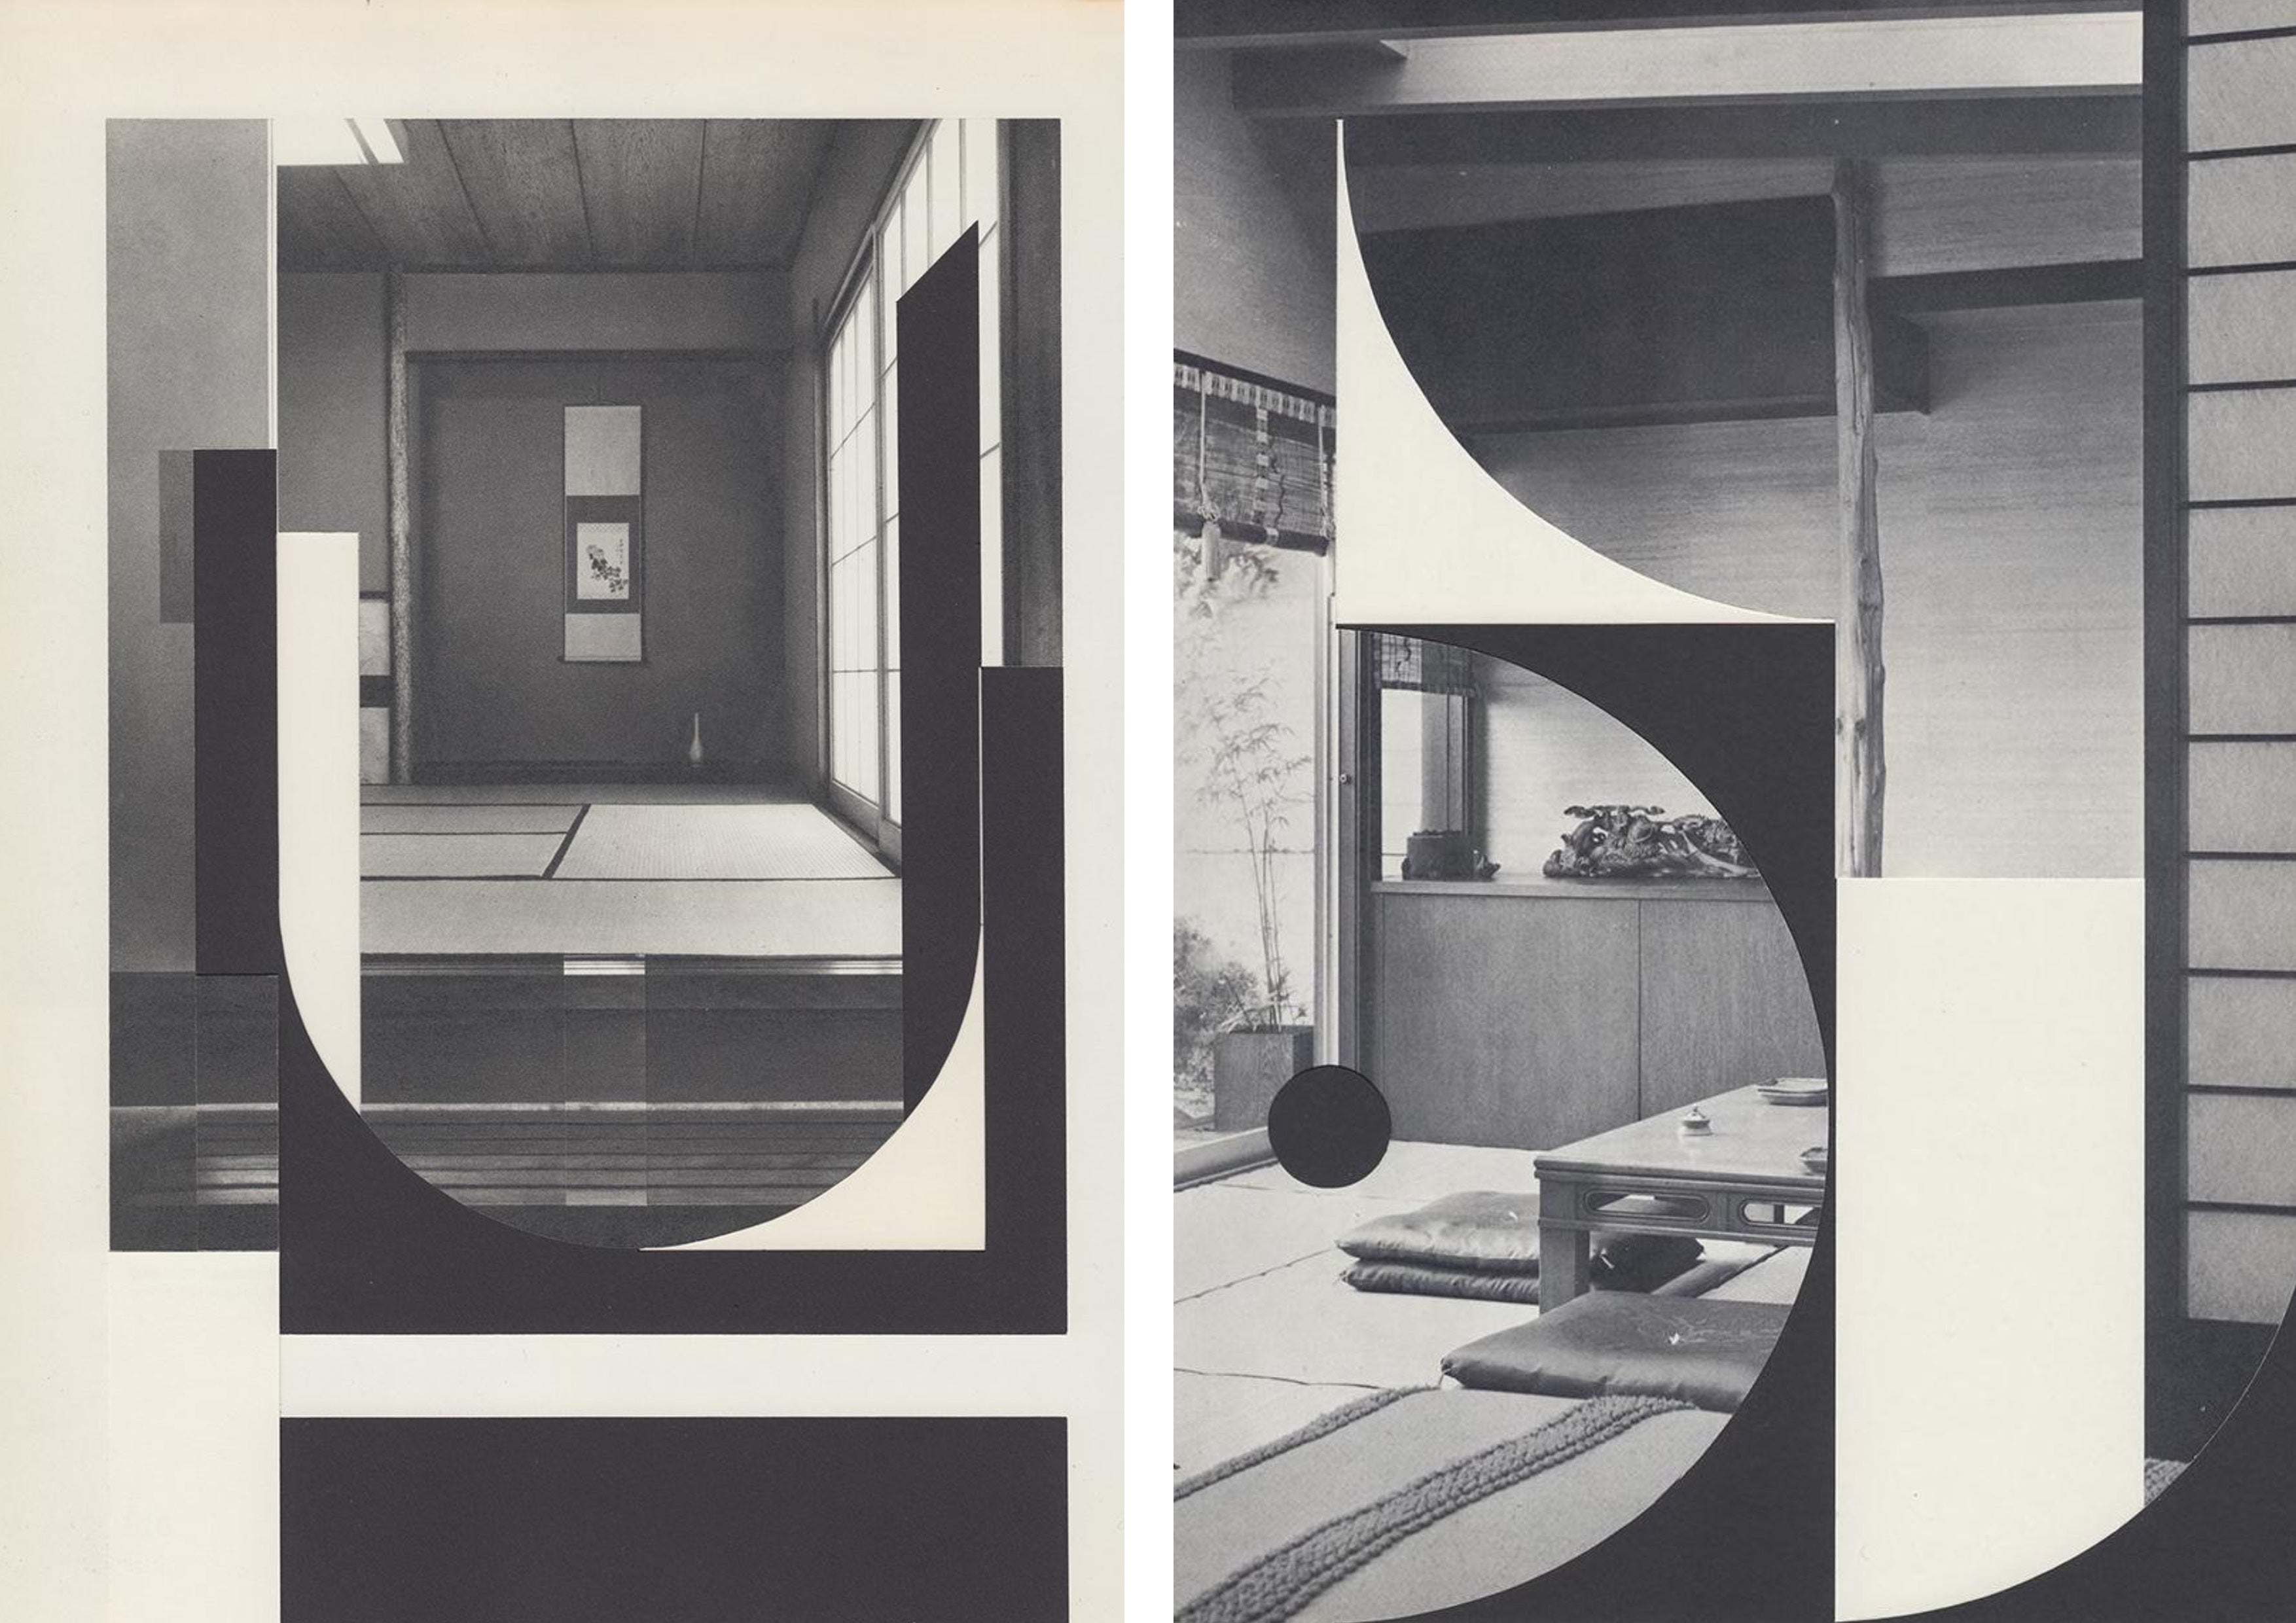 Louis Reith: Bold shapes & architectural spaces